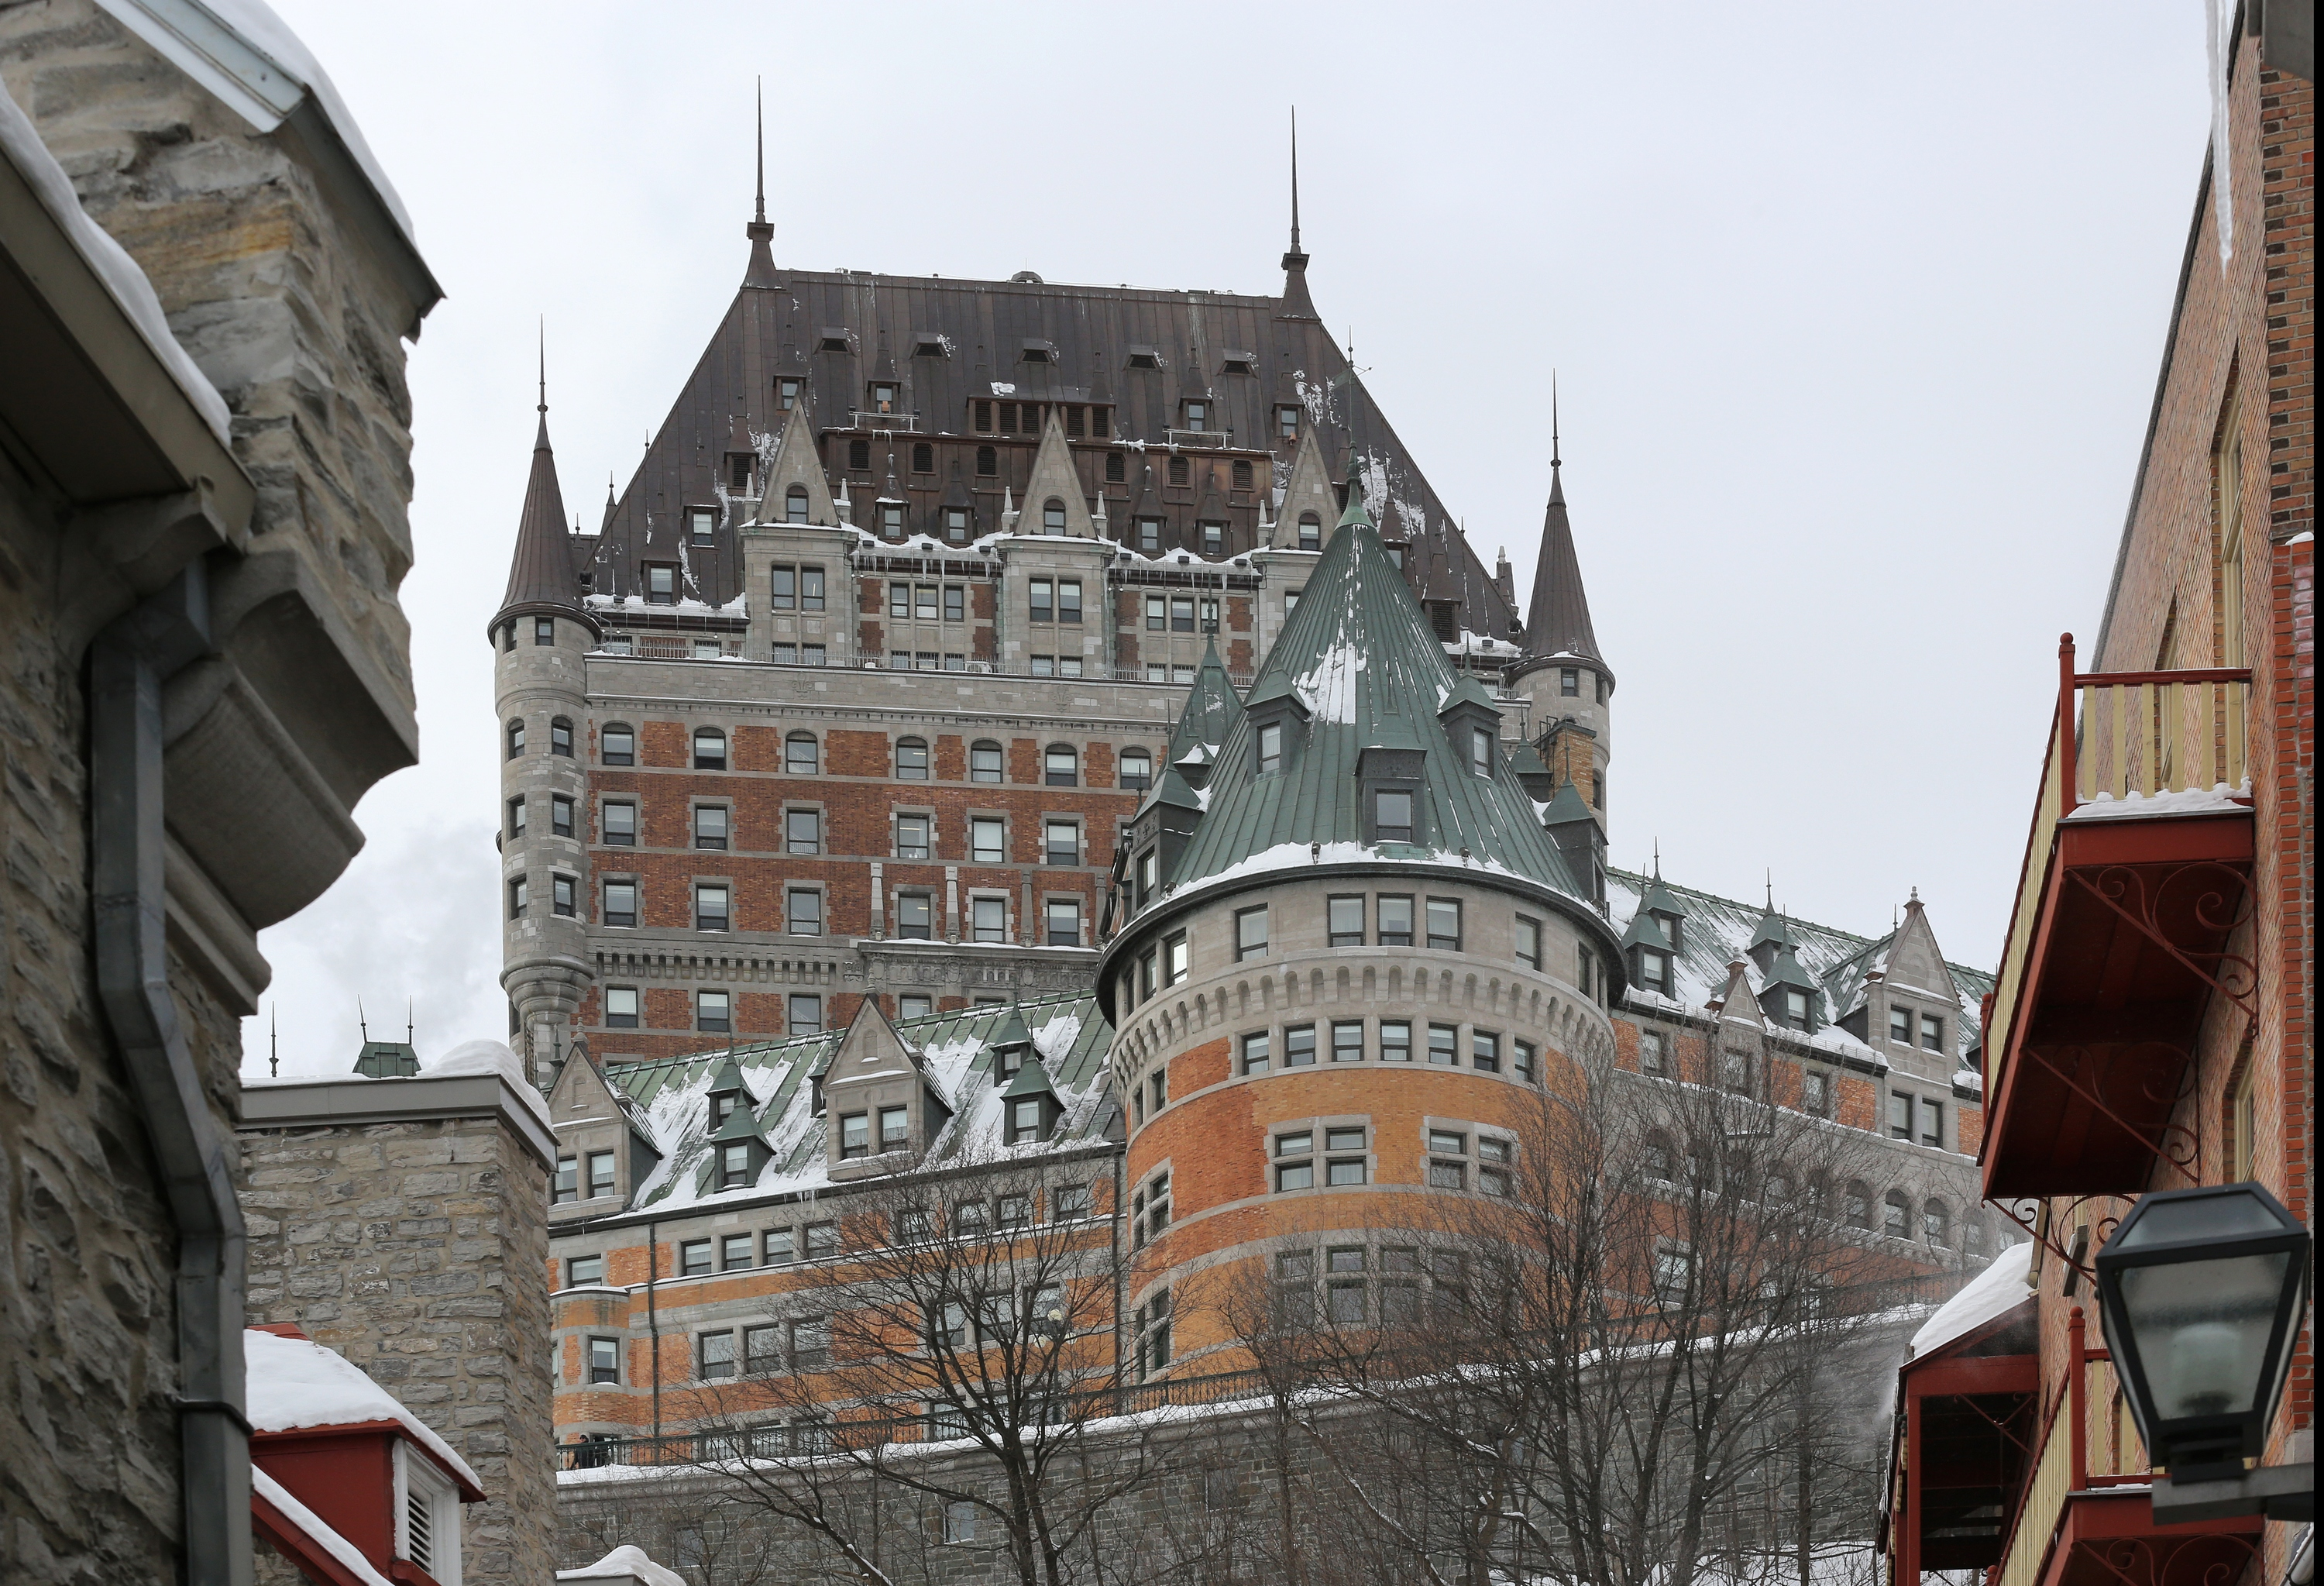 The Château Frontenac is the iconic centerpiece of the Old Québec City skyline. (Photo: FTO/Martin Griff)